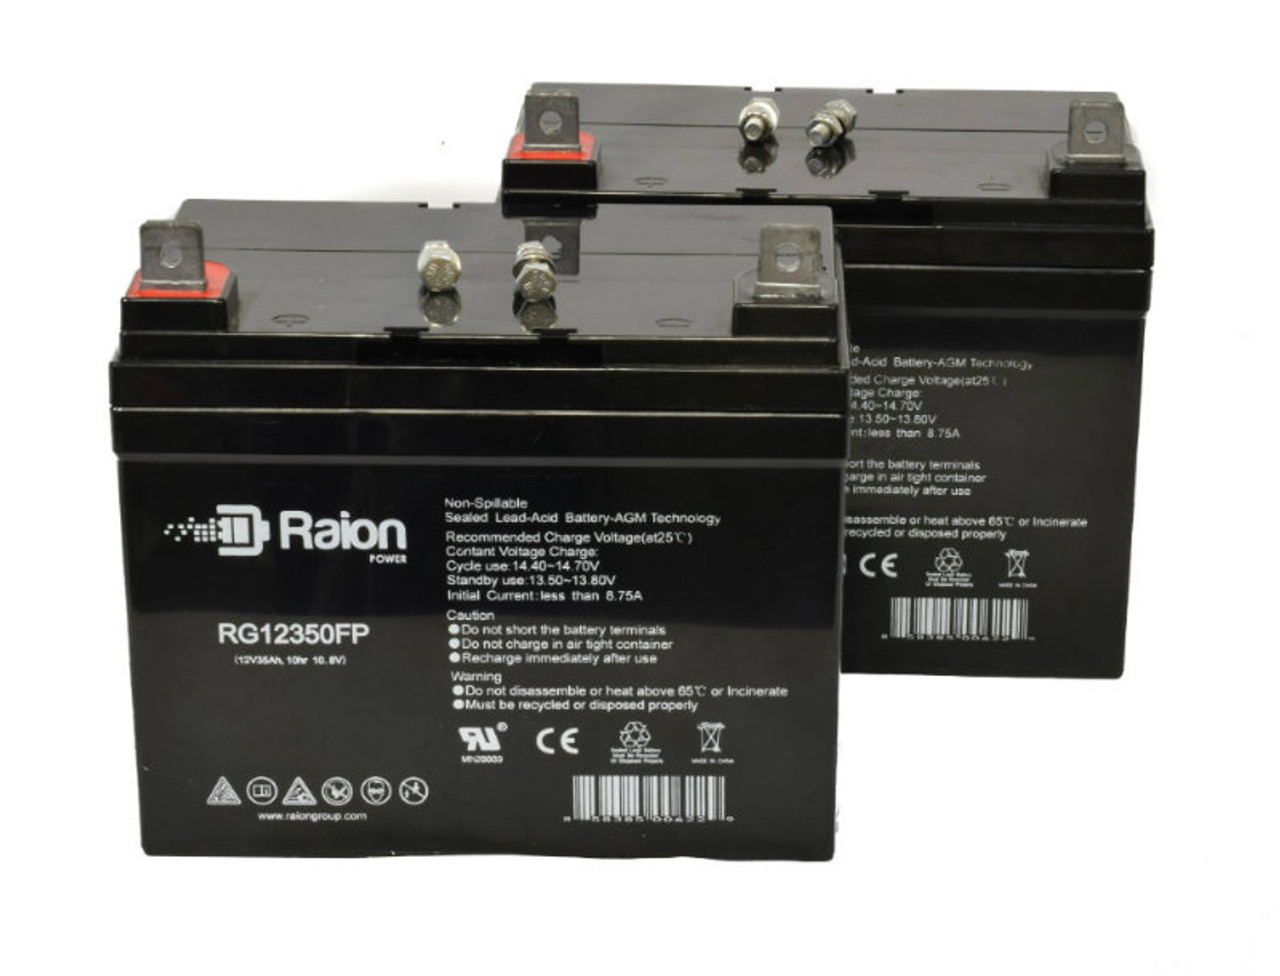 Raion Power RG12350FP Replacement Wheelchair Battery For Pride SC300 (2 Pack)